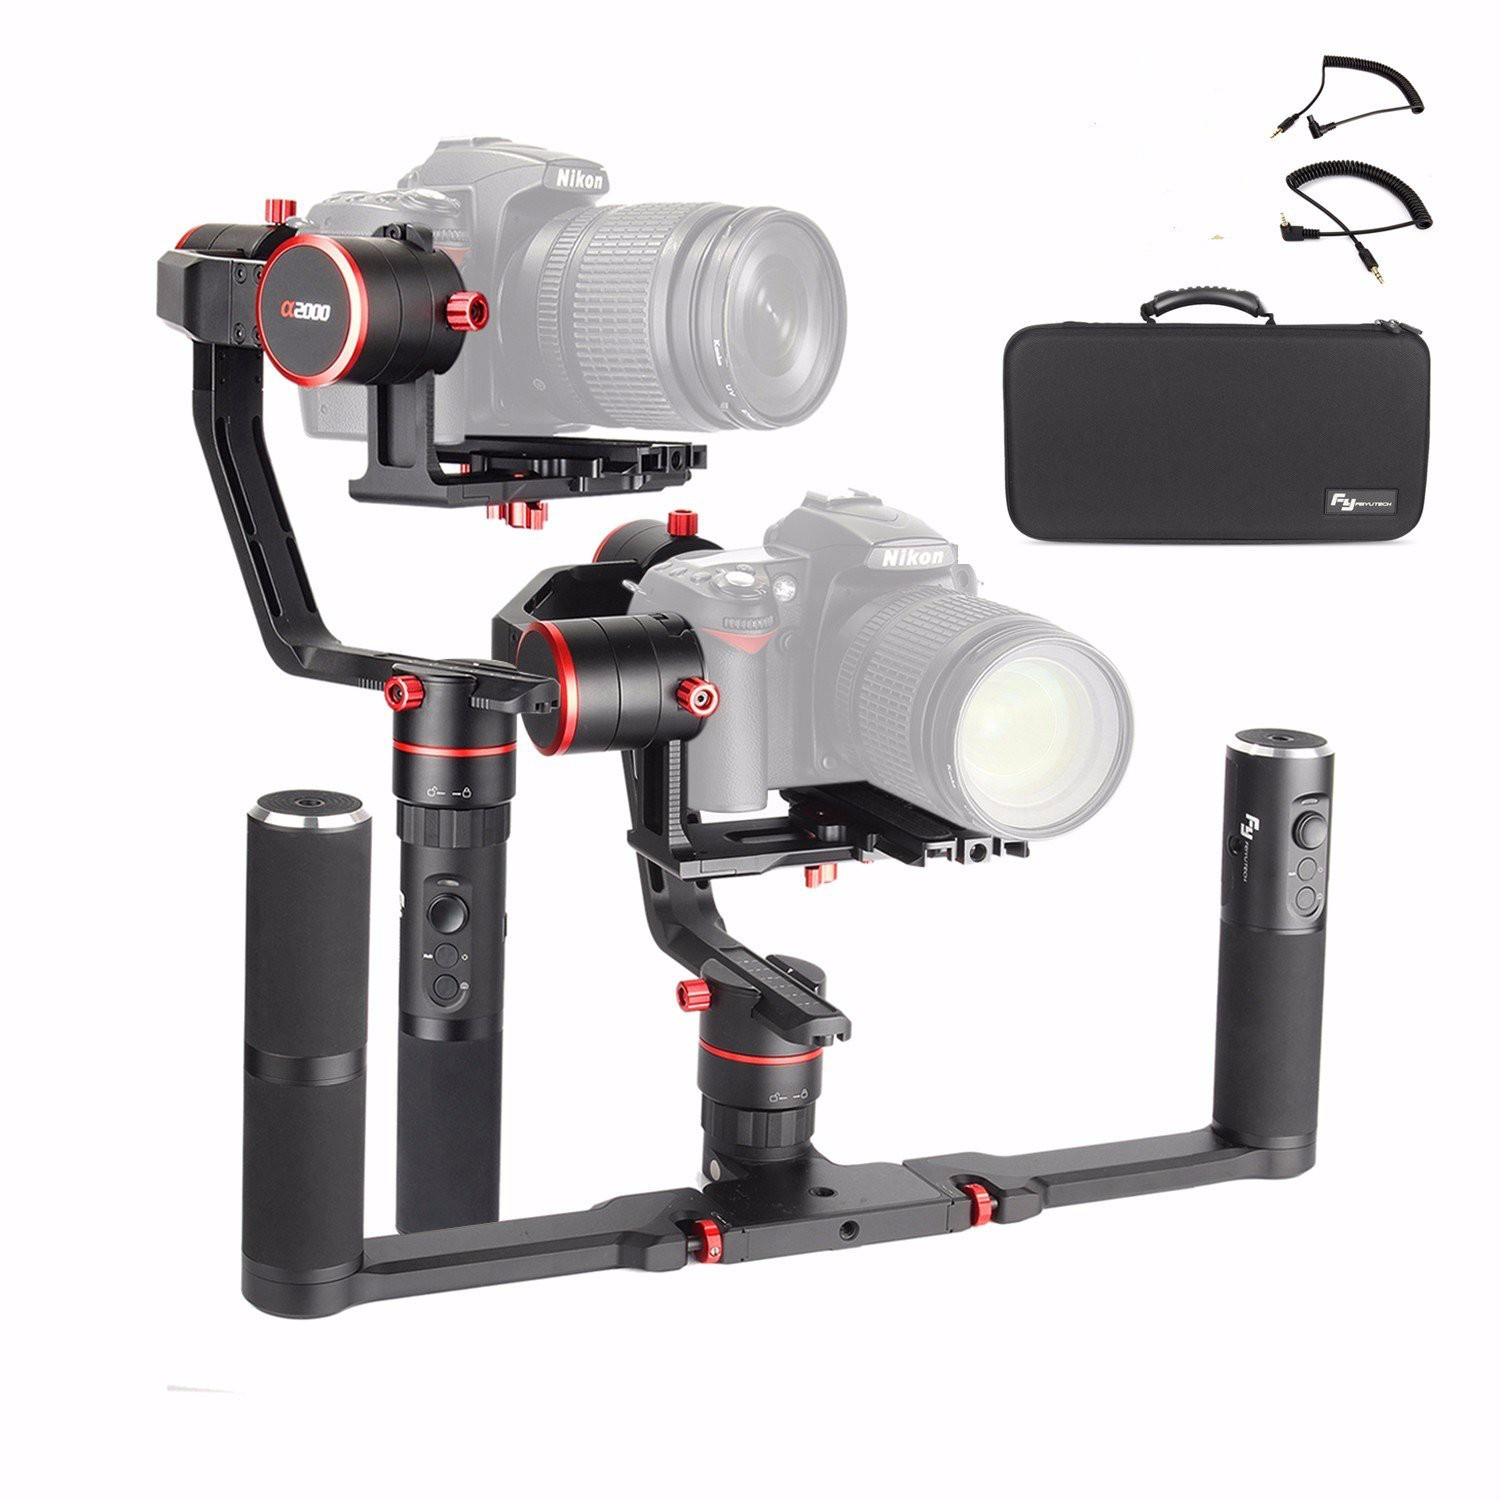 DHL Feiyu Tech Feiyu a2000 3-Axis Gimbal +Dual Handle Stabilizer for Canon 5D Series for SONY A7 Seri a6500, for Panasonic GH4/5 beholder ds1 3 axis handhled gimbal stabilzier for canon 5d 6d 7d dslr gh4 gh7 nikon d810 d800 dmc sony a7 nex series